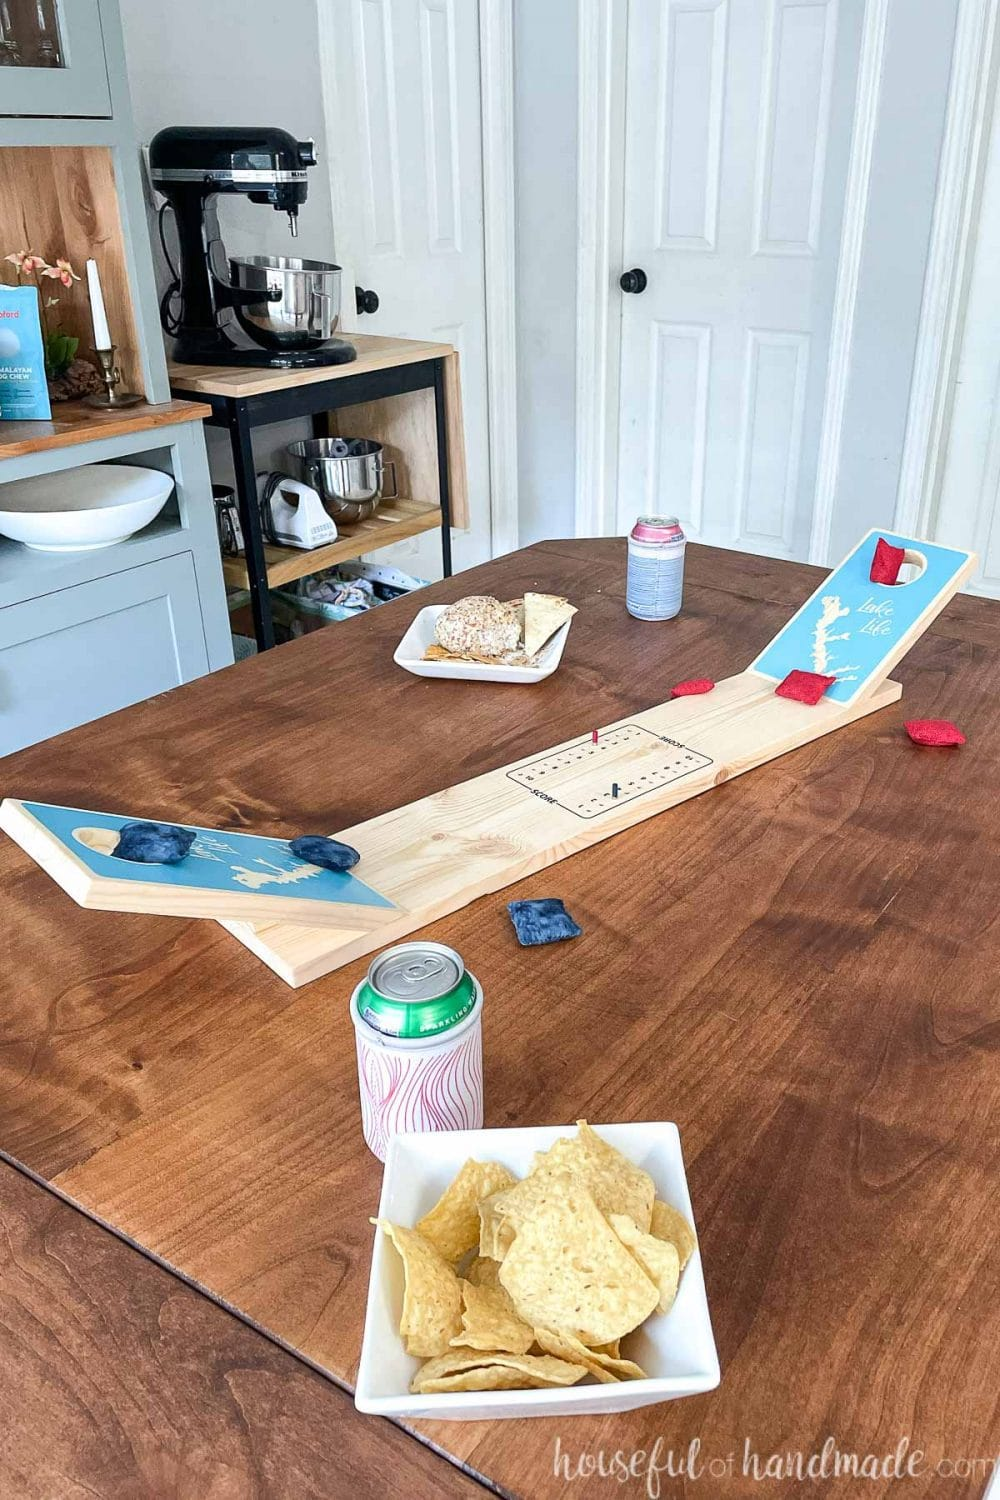 Dining room table with tabletop cornhole game made from wood on the table with drinks and snacks around it.